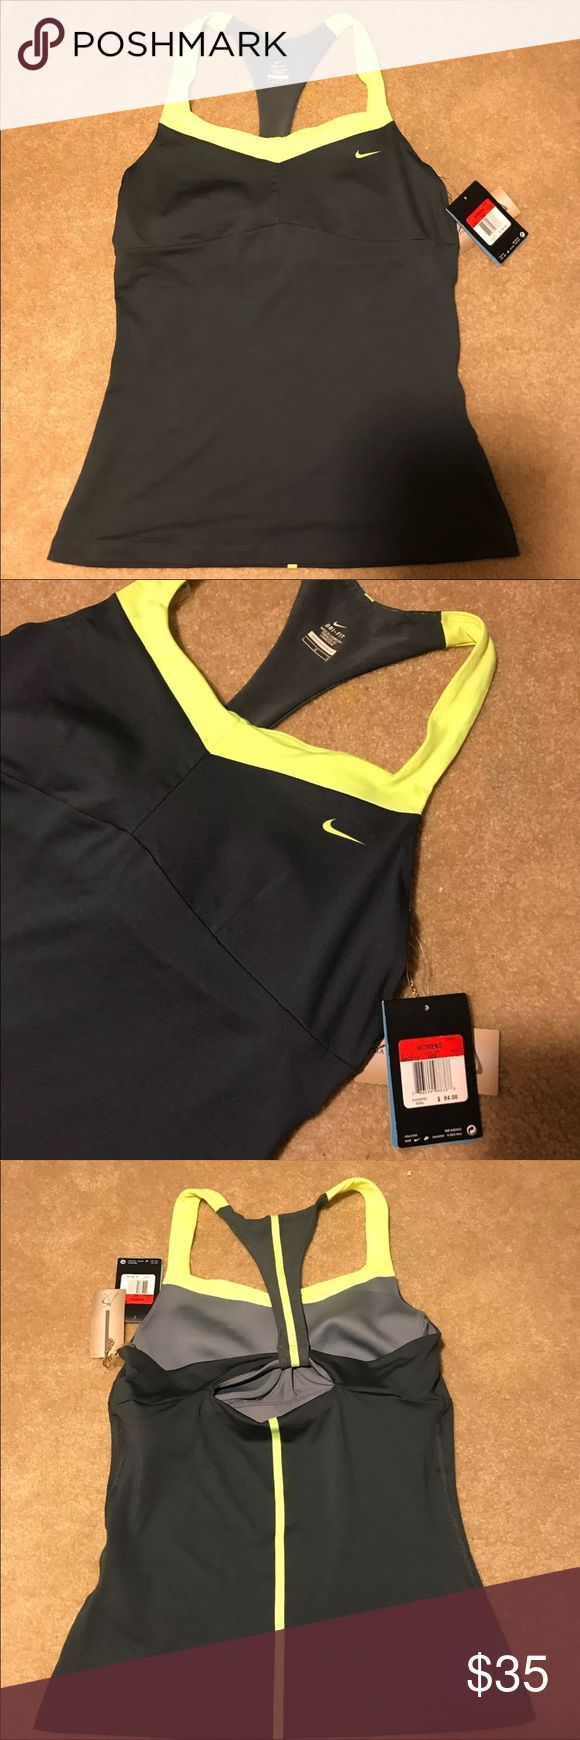 Nike Tank Top Nike tank grey/highlighter yellow. New with tags! Size large Nike Tops Tank Tops